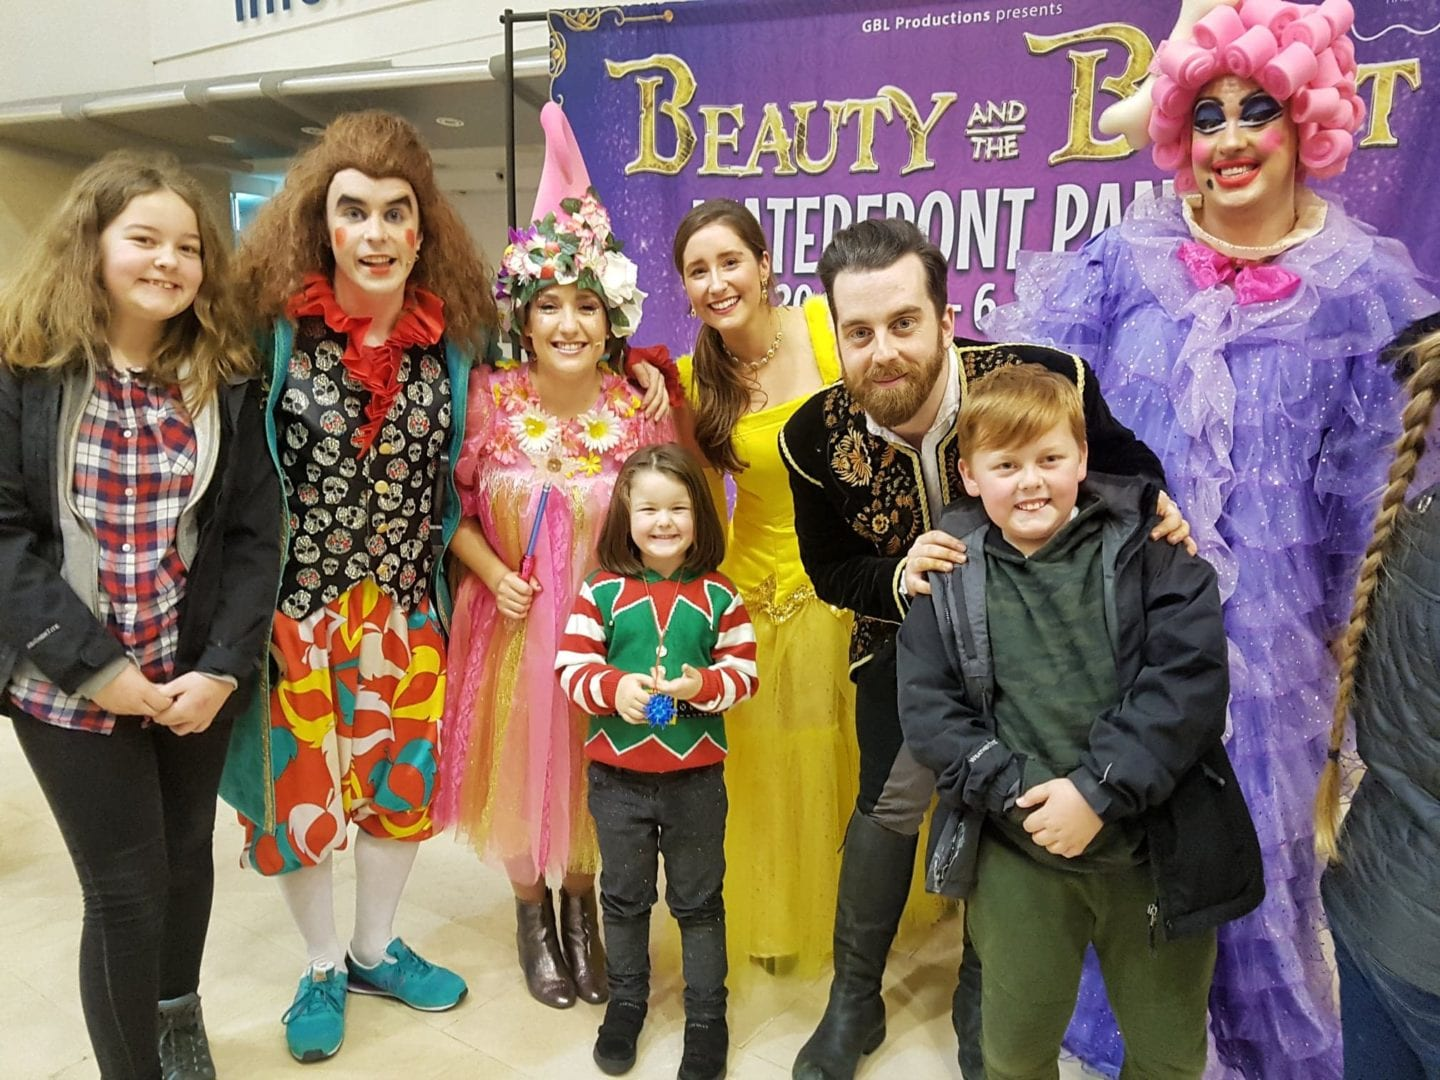 Beauty and the Beast at the Waterfront, Belfast